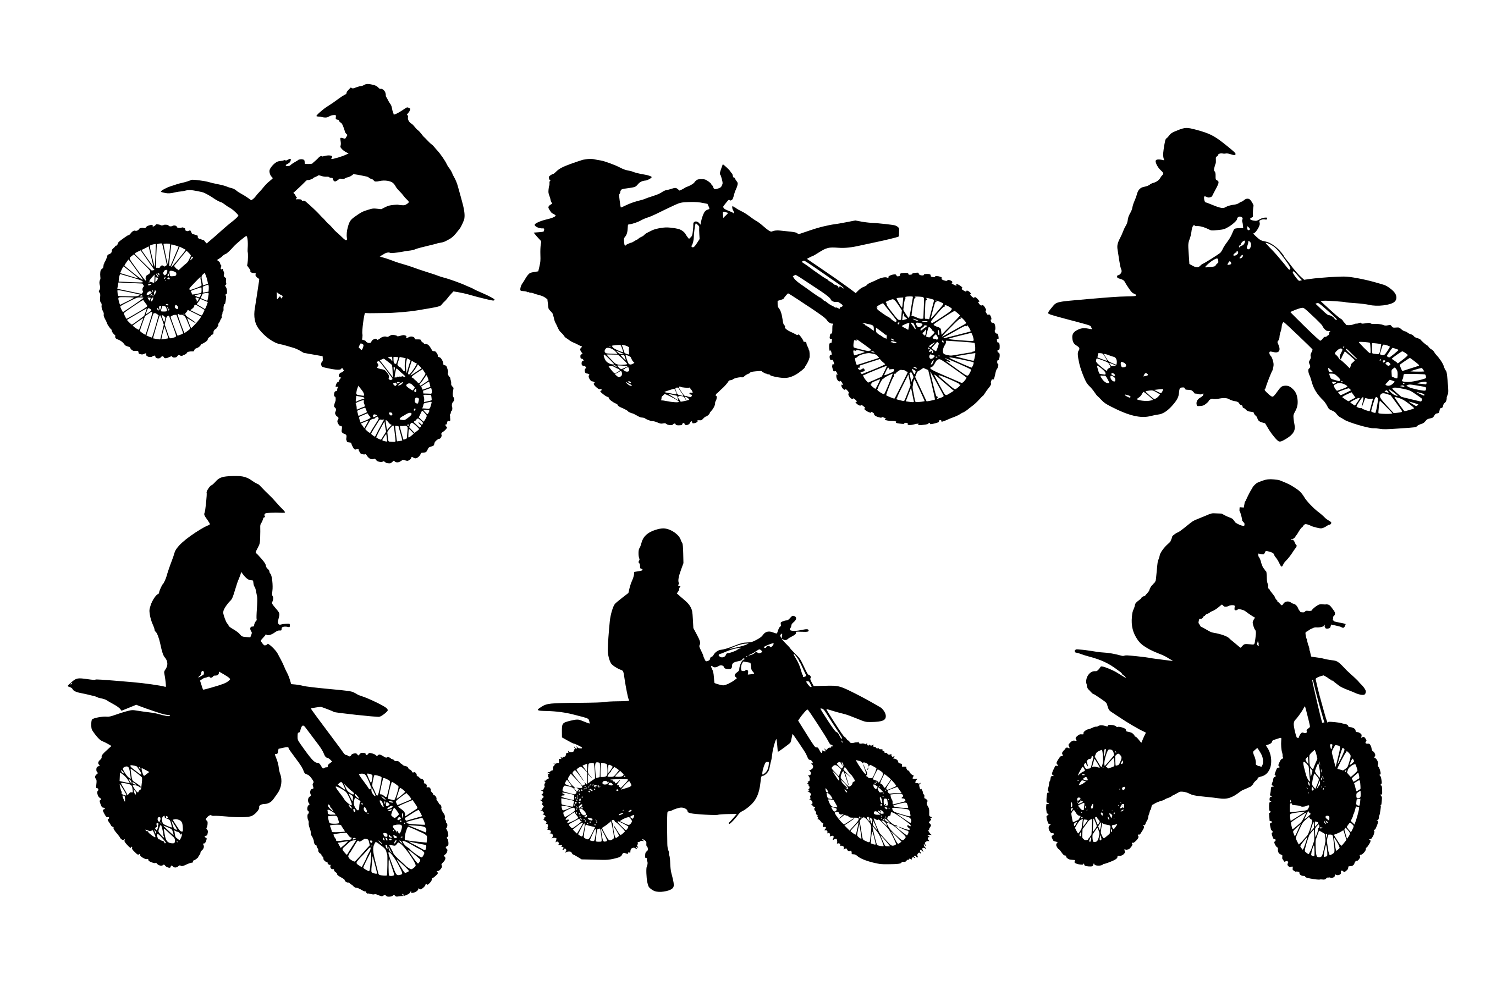 dirt bike silhouette motocross dirt bike wall decal sticker 9 desenho de moto bike silhouette dirt